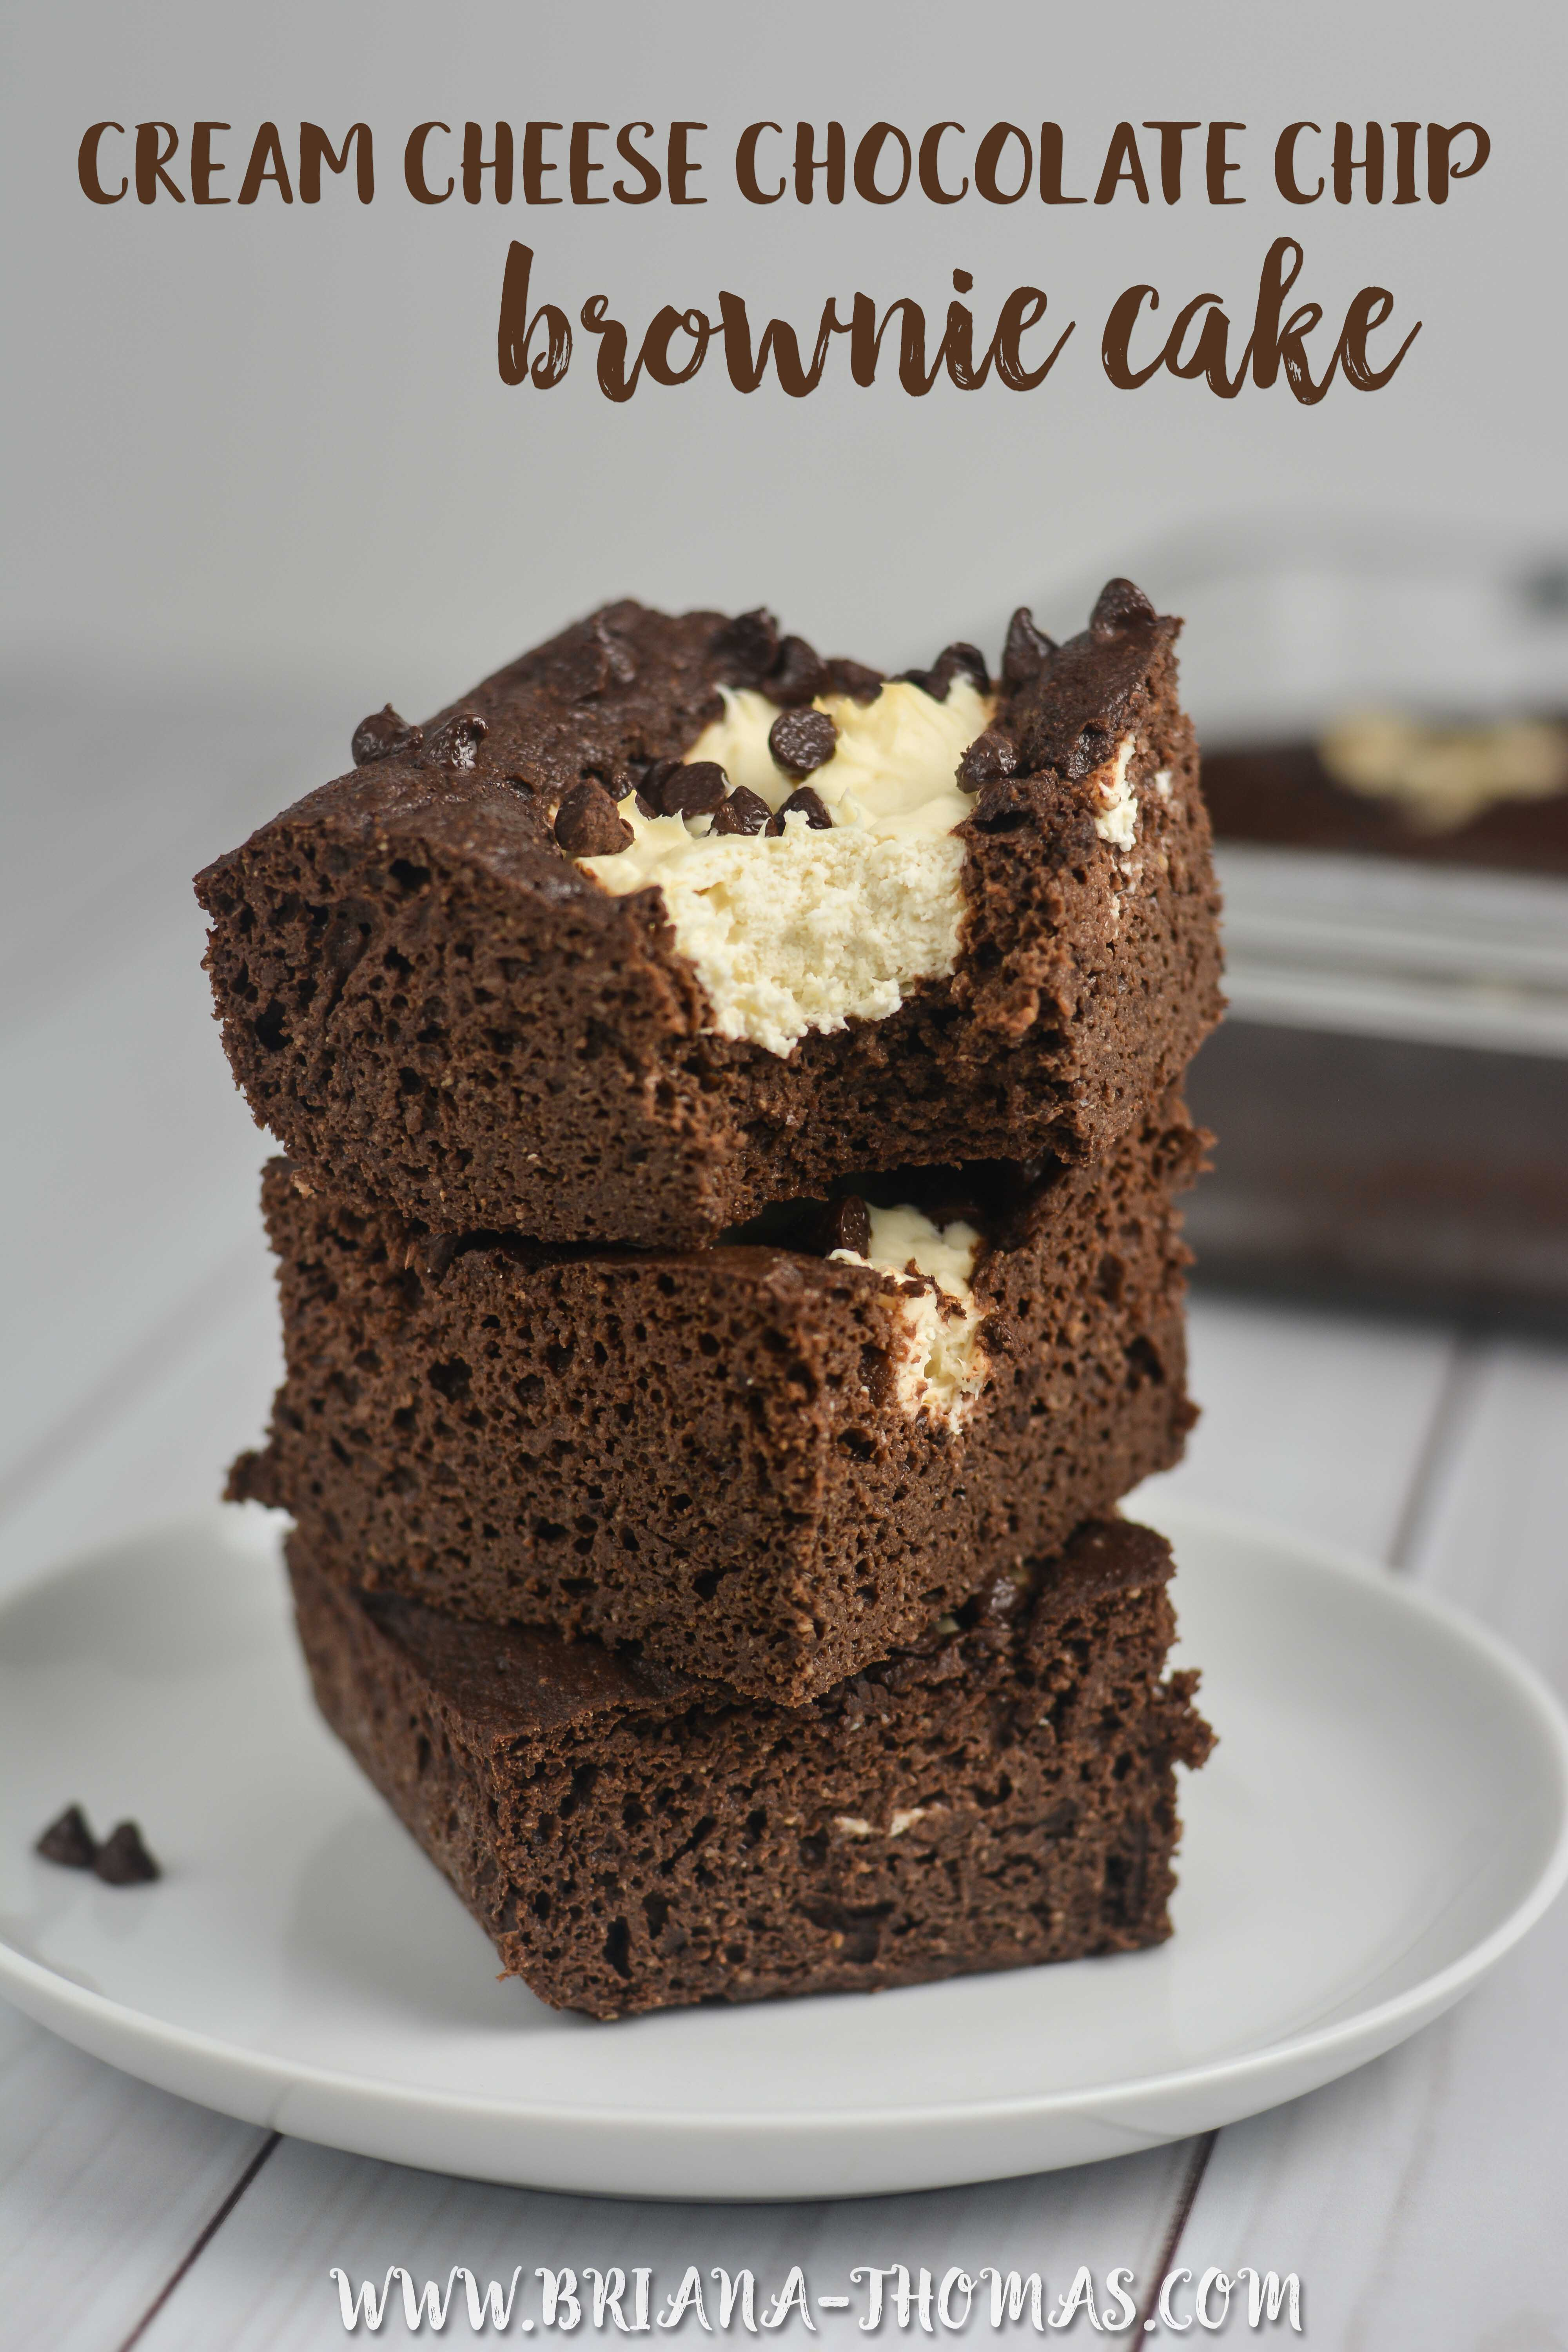 Low Carb Cream Cheese Chocolate Chip Brownie Cake Briana